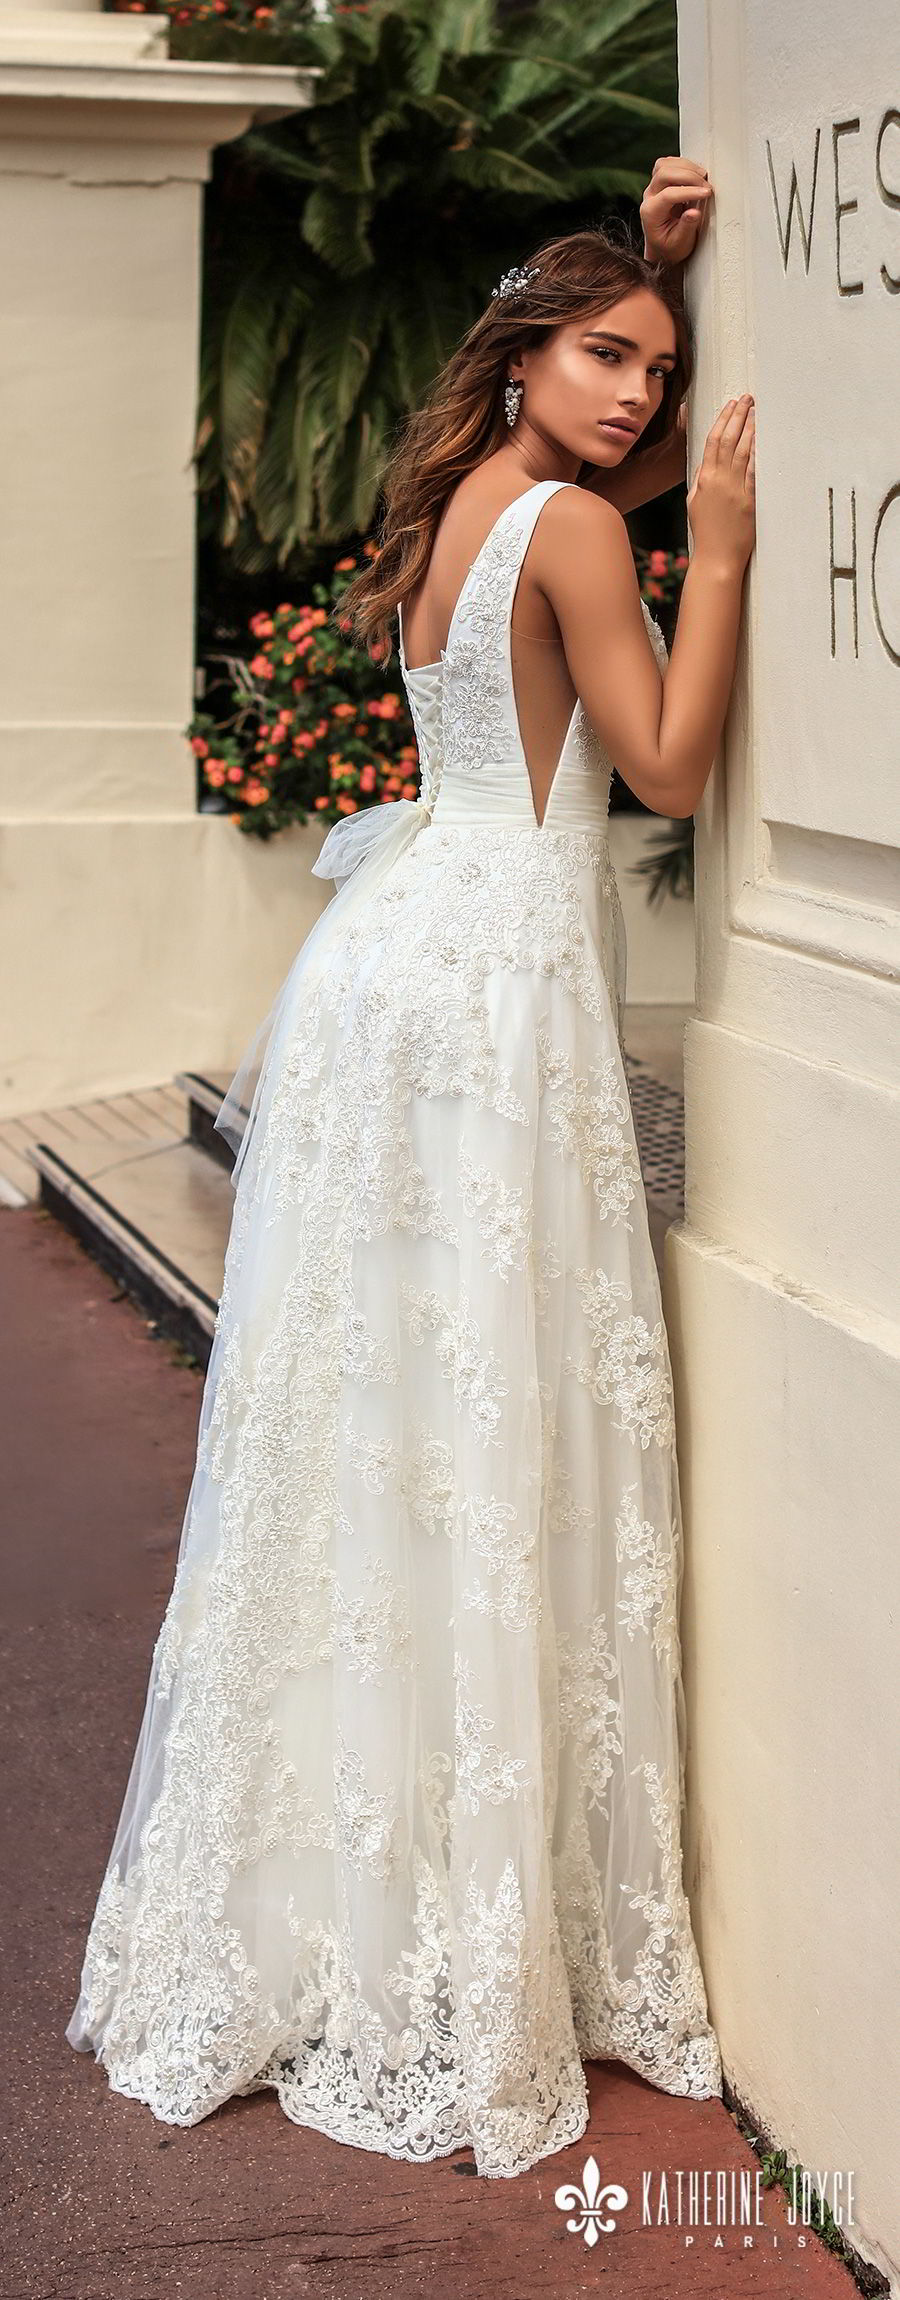 katherine joyce 2018 bridal sleeveless deep v neckline full embellishment side open romantic a  line wedding dress corset back sweep train (perla) bv